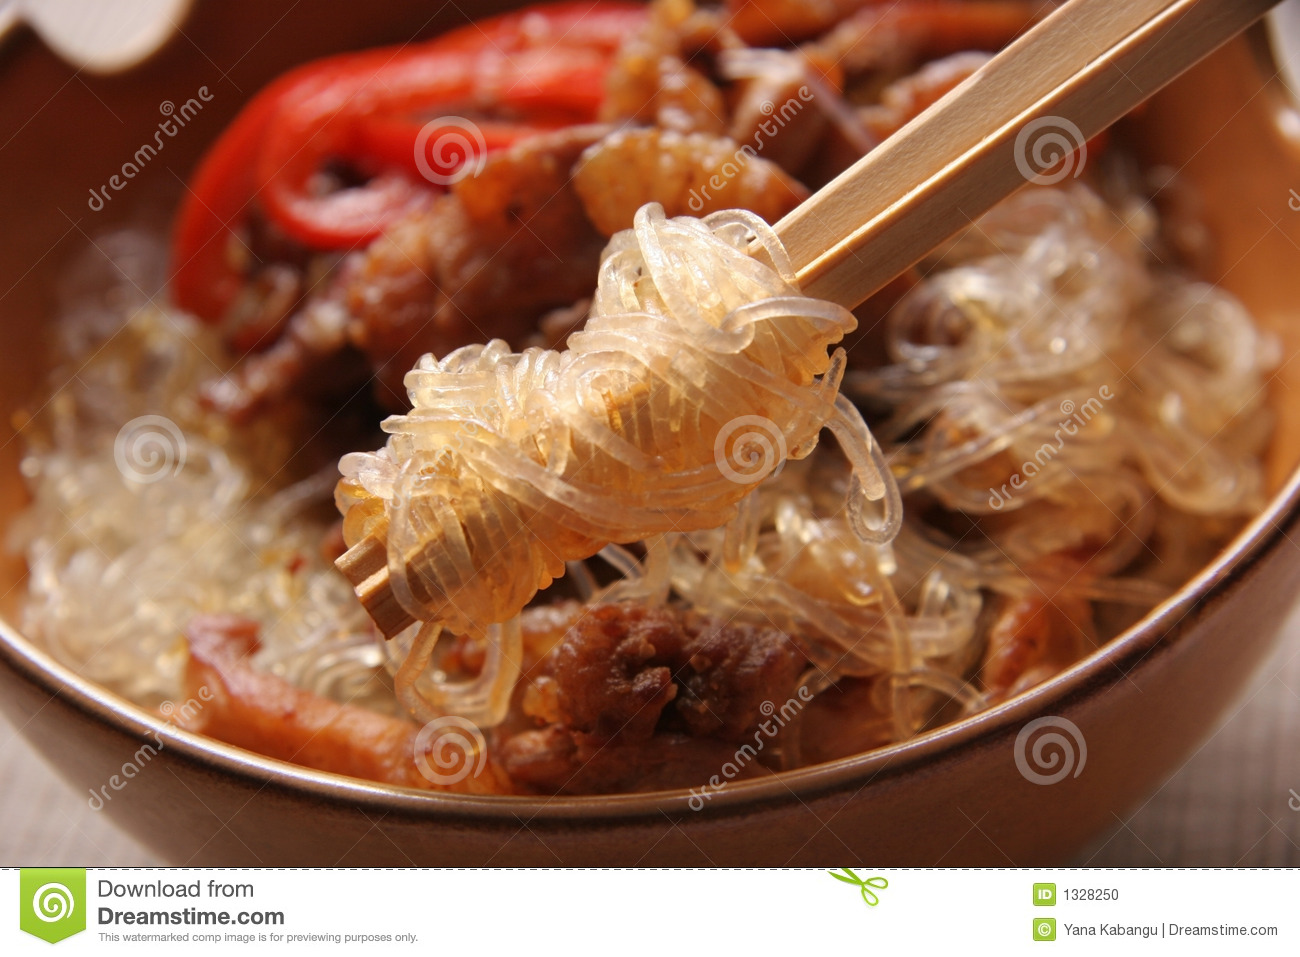 Rice Noodles With Pork. Stock Photo - Image: 1328250